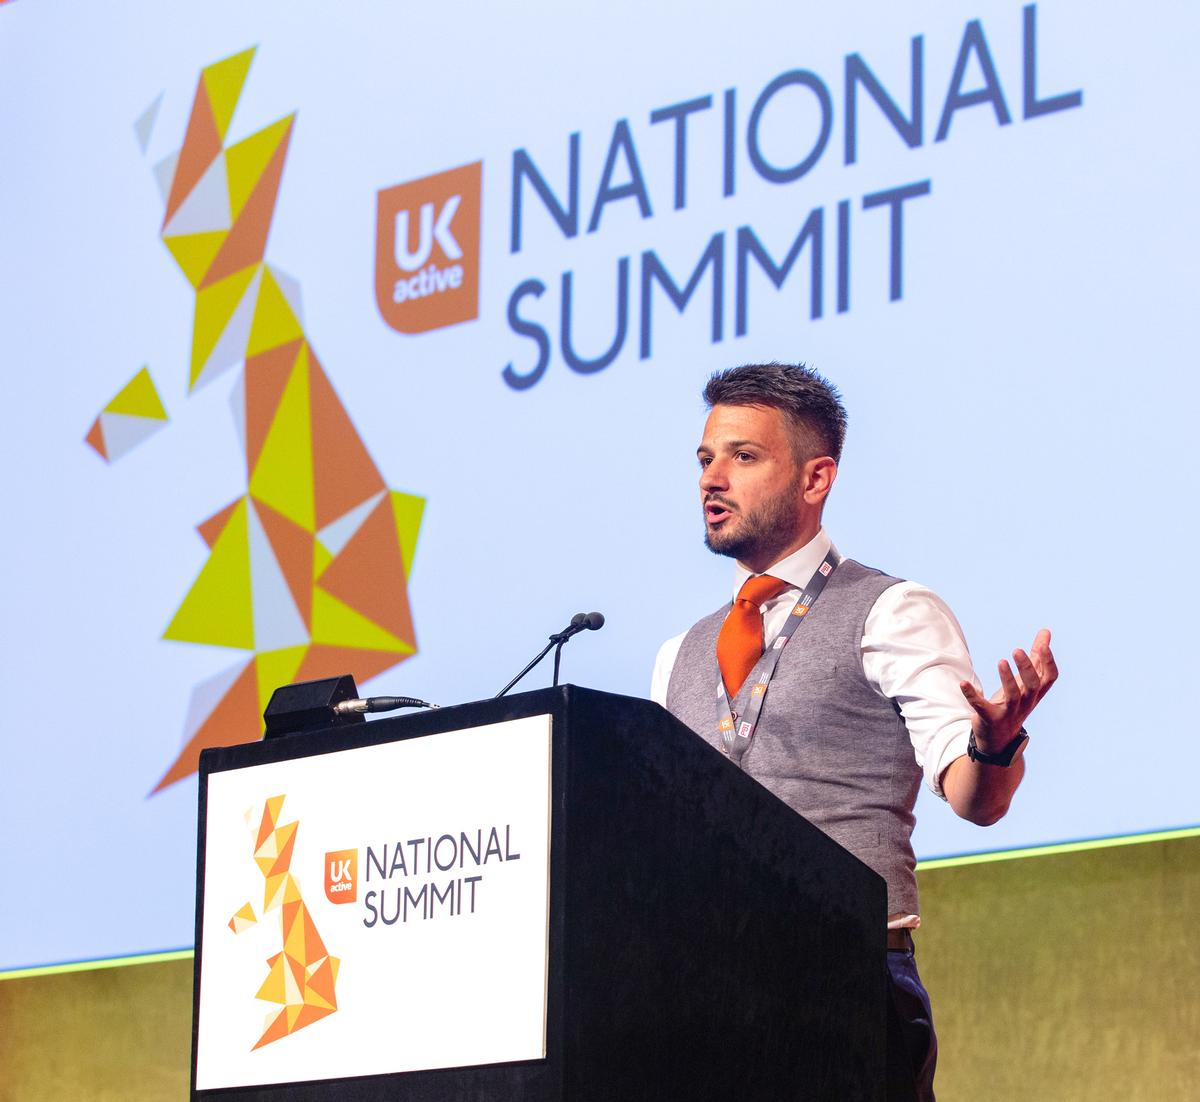 During his tenure Ward helped position ukactive as a driving force behind public health policy